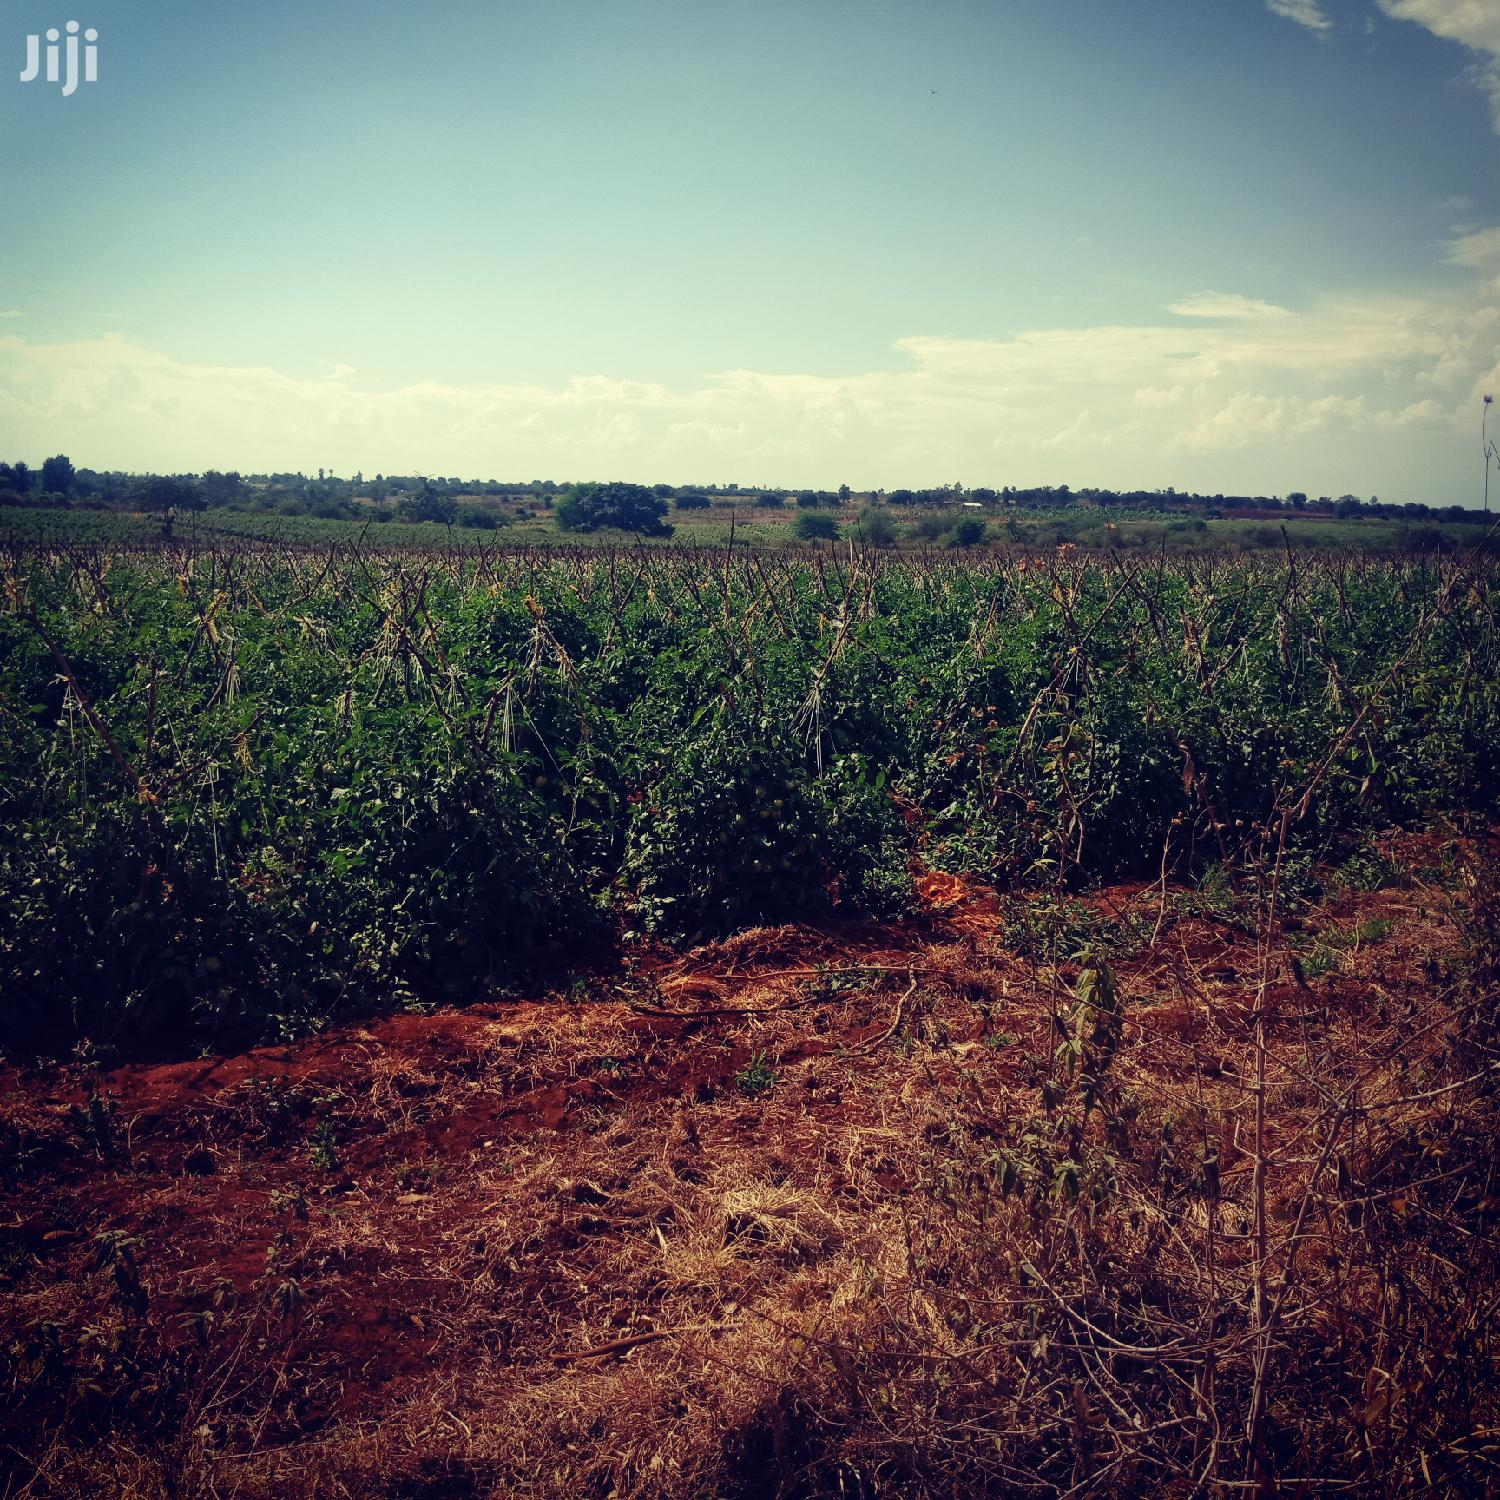 400 Acres Of Agricultural Land For Leasing At Embu County   Land & Plots for Rent for sale in Gatanga, Murang'a, Kenya